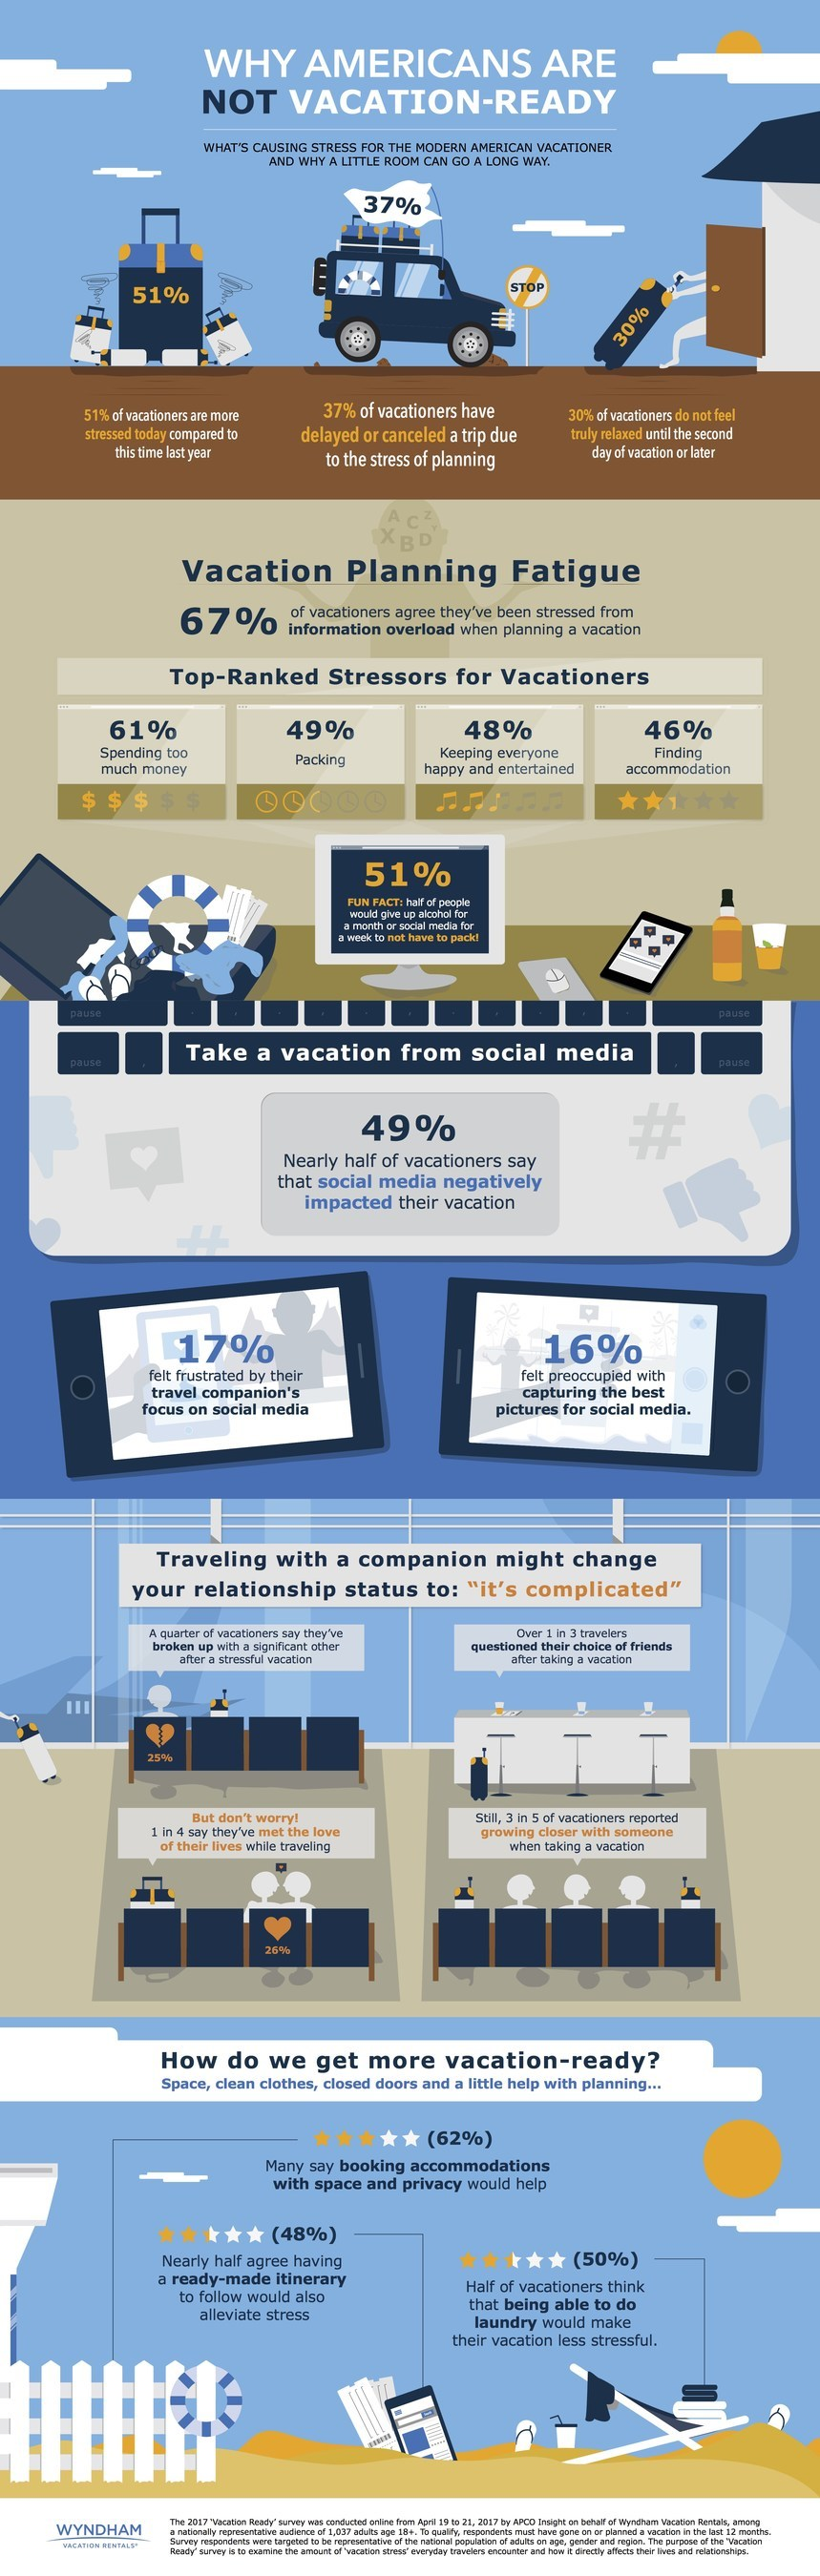 Why Americans Are Not Vacation-Ready Infographic